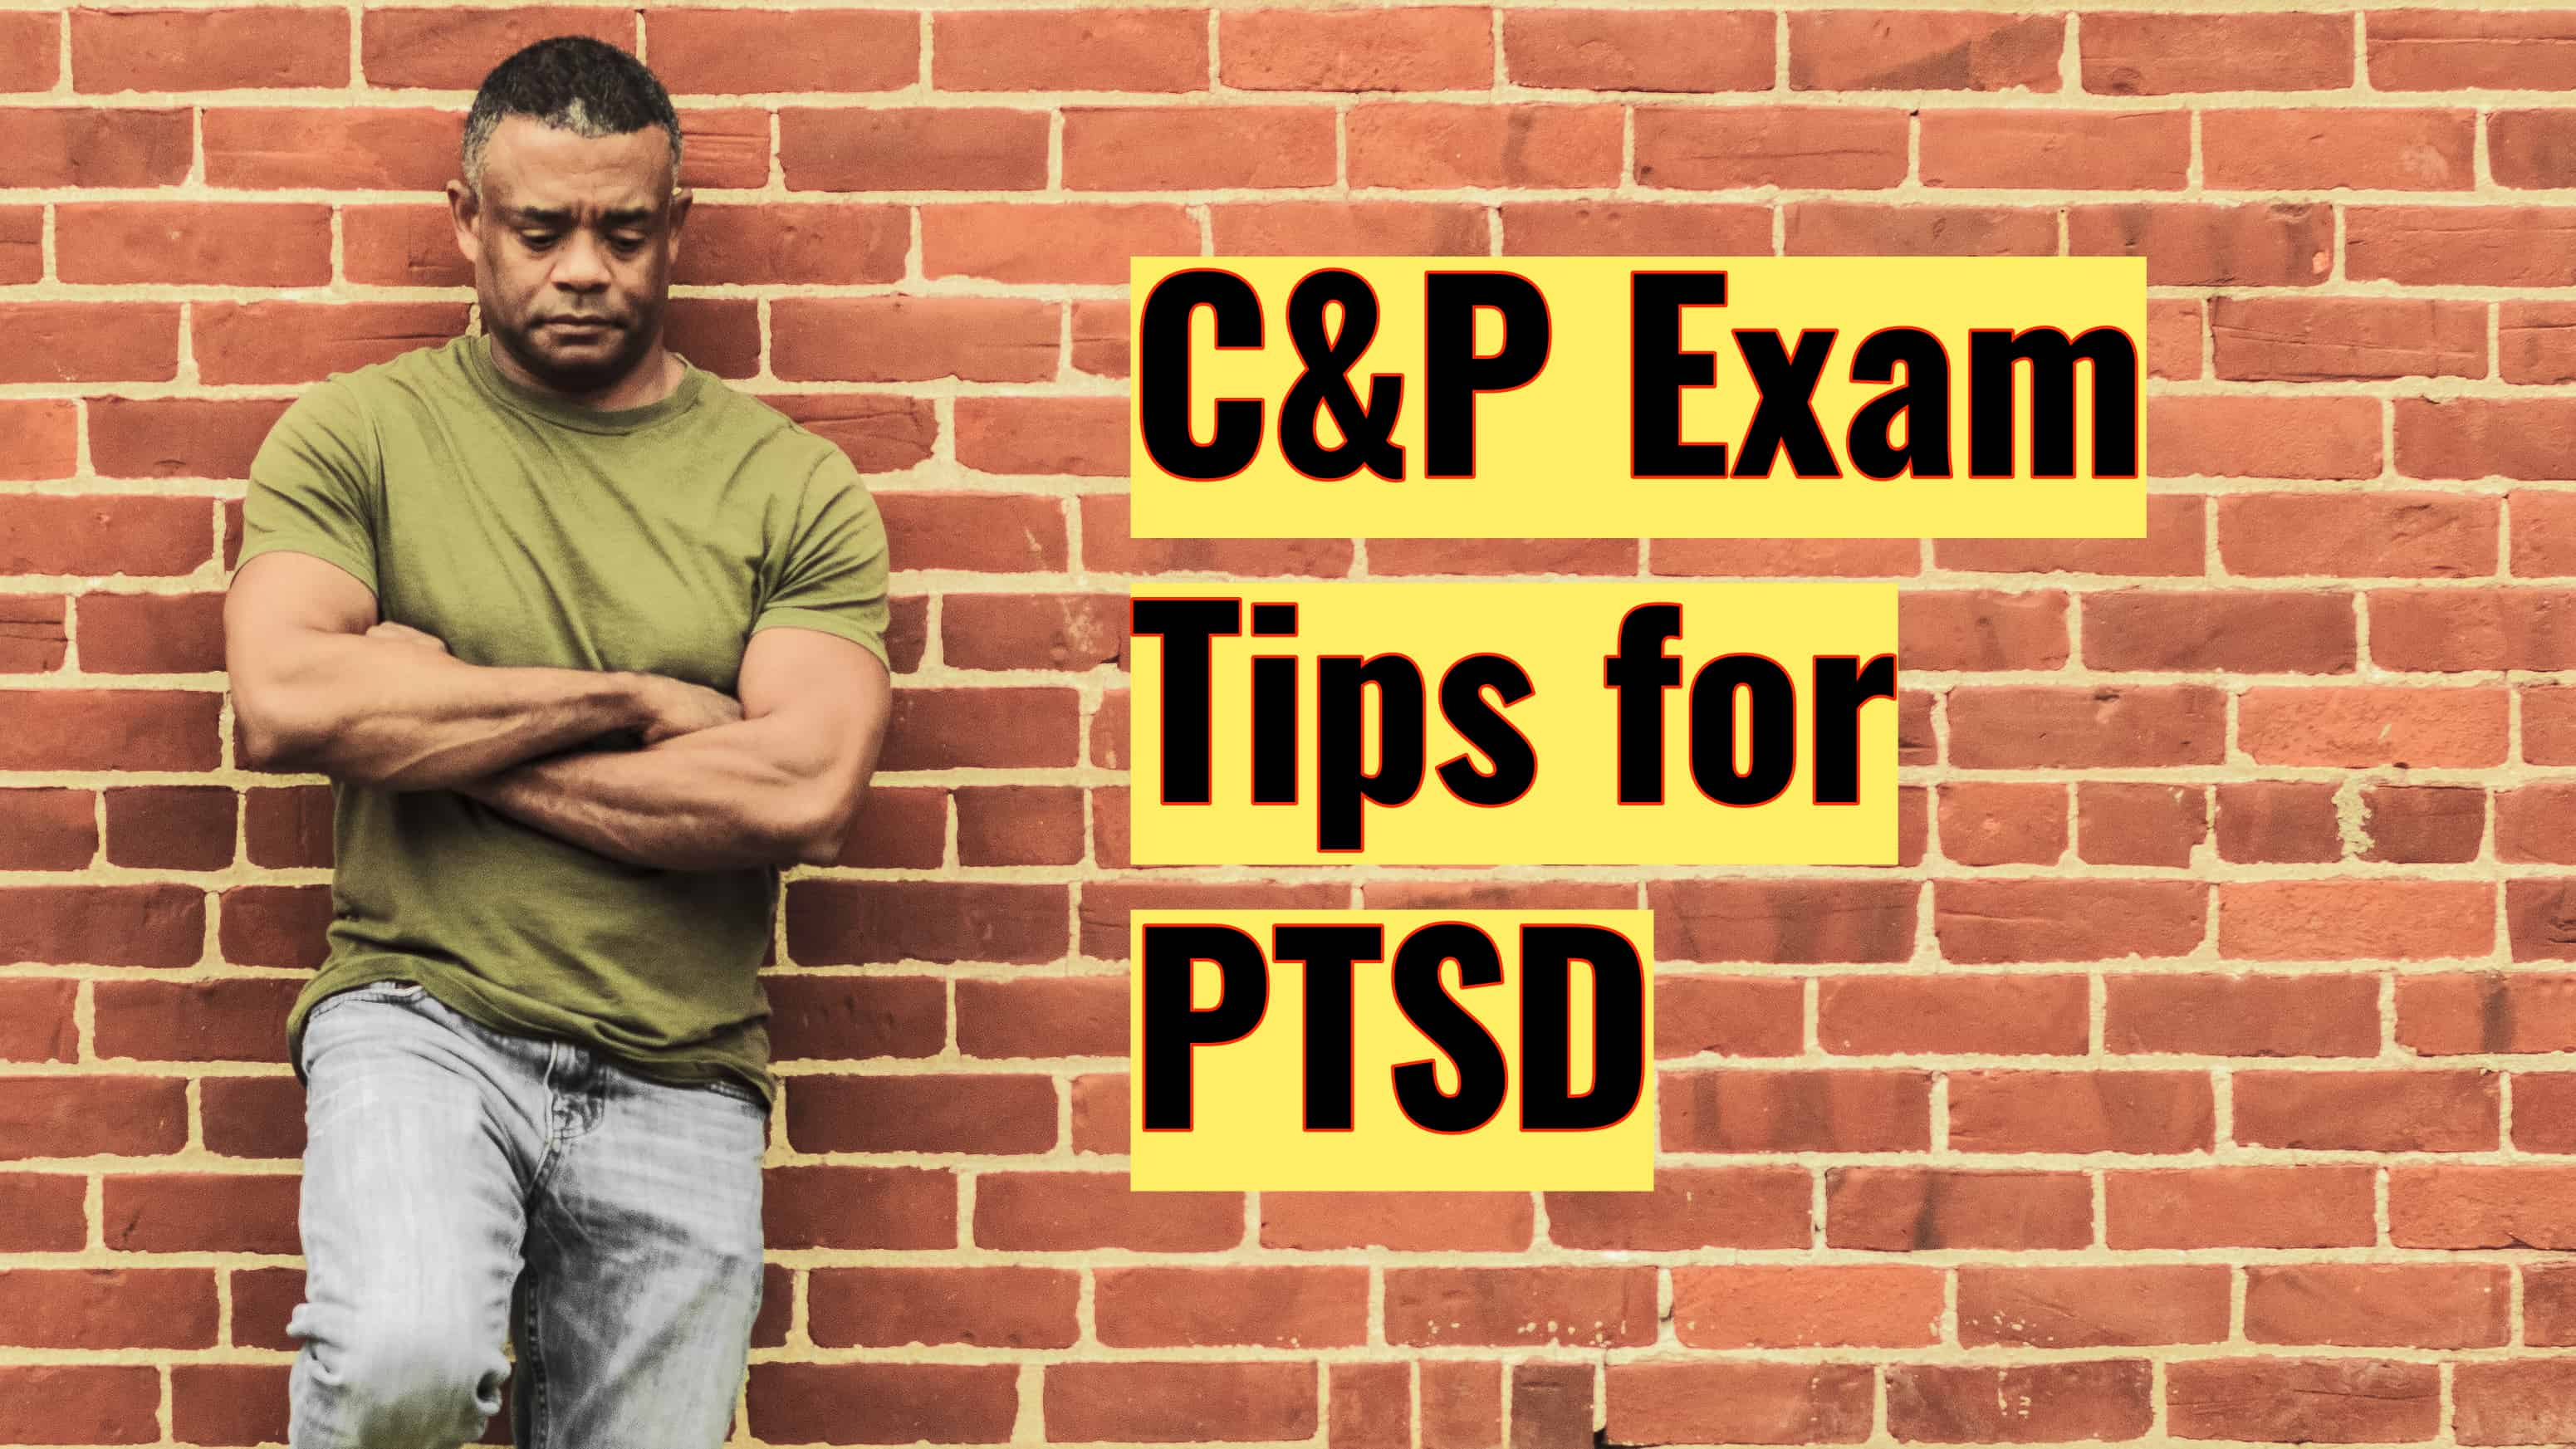 5 Tips to Prepare for Your C&P Exam for PTSD CP Exam Tips for PTSD